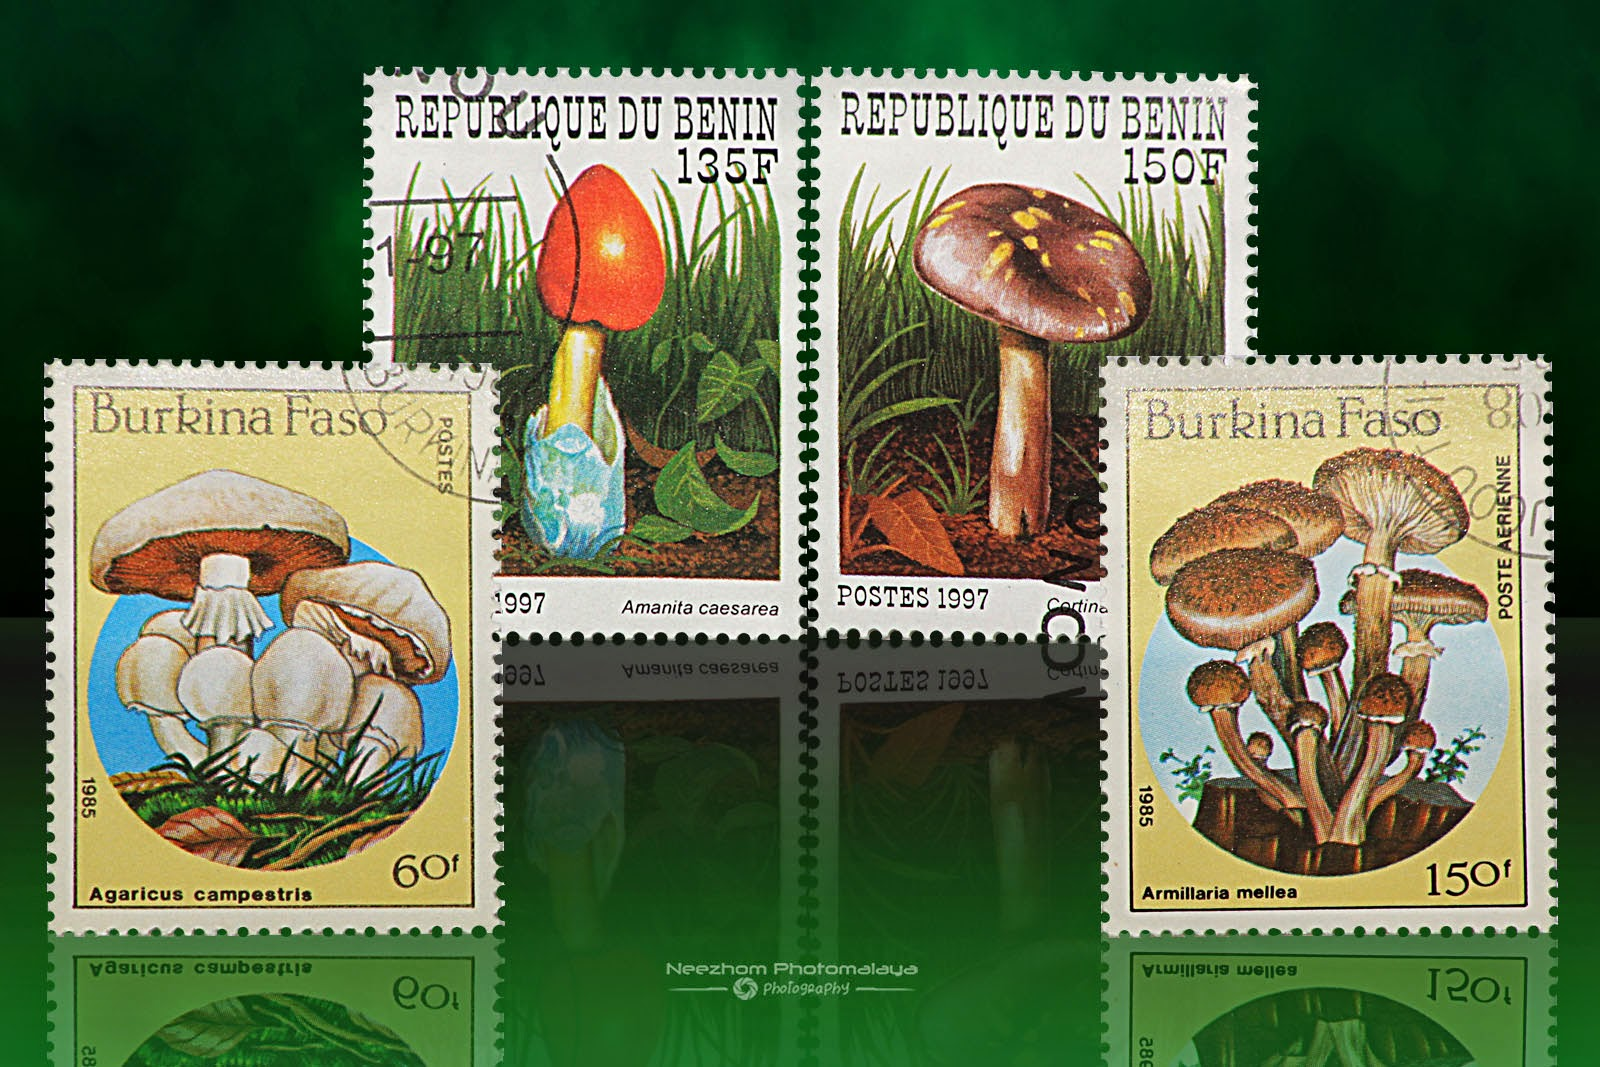 Republic of Benin and Burkina Faso mushrooms stamps